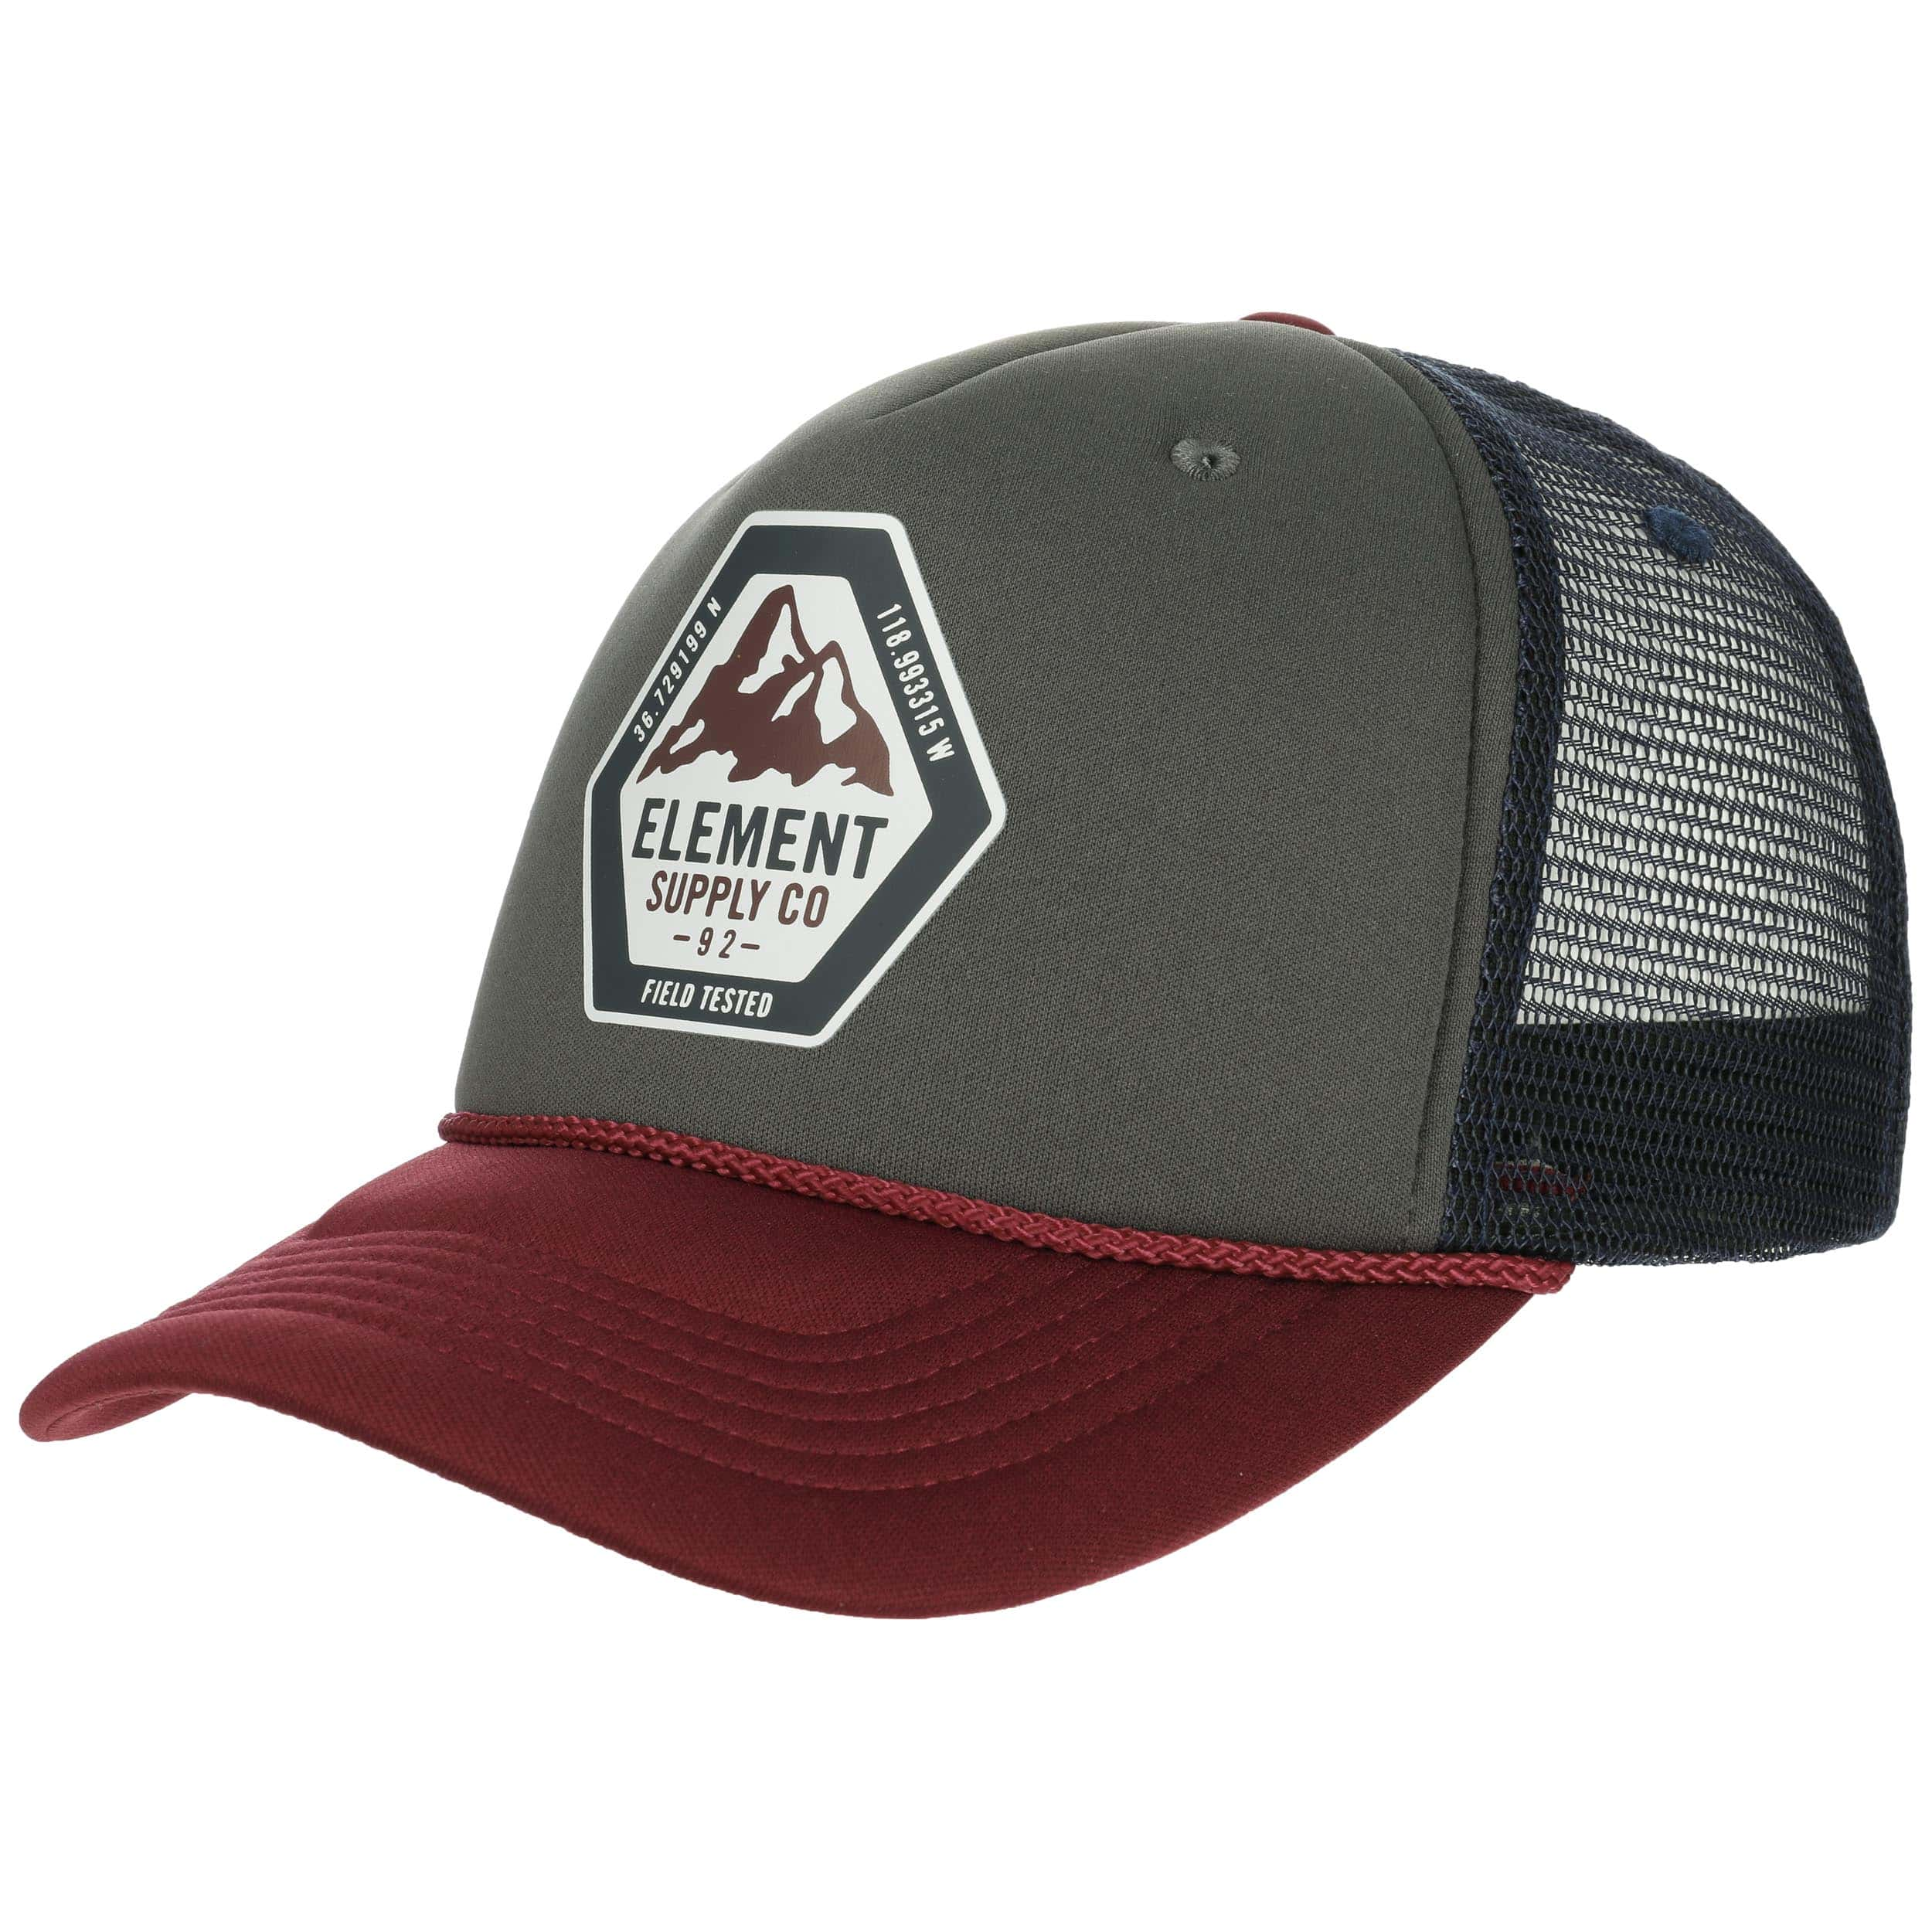 c97a19a1399 ... Tract Trucker Cap by element - grey 6 ...